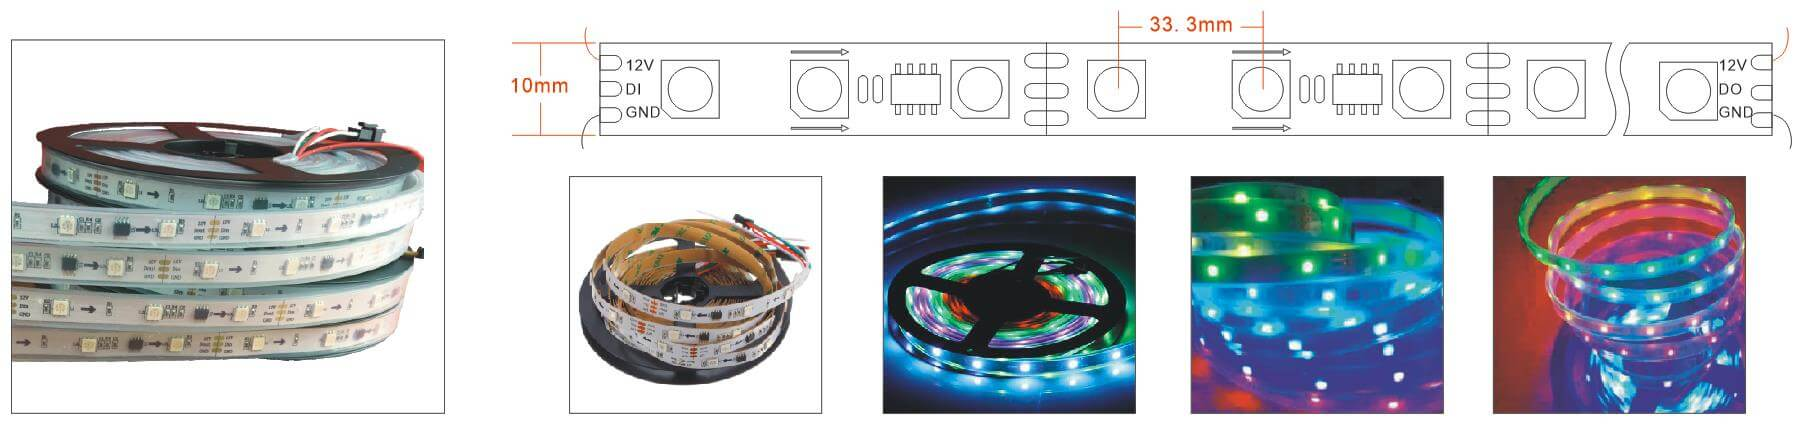 ws2811 programmable led strip 10L 30LEDs per meter diagram